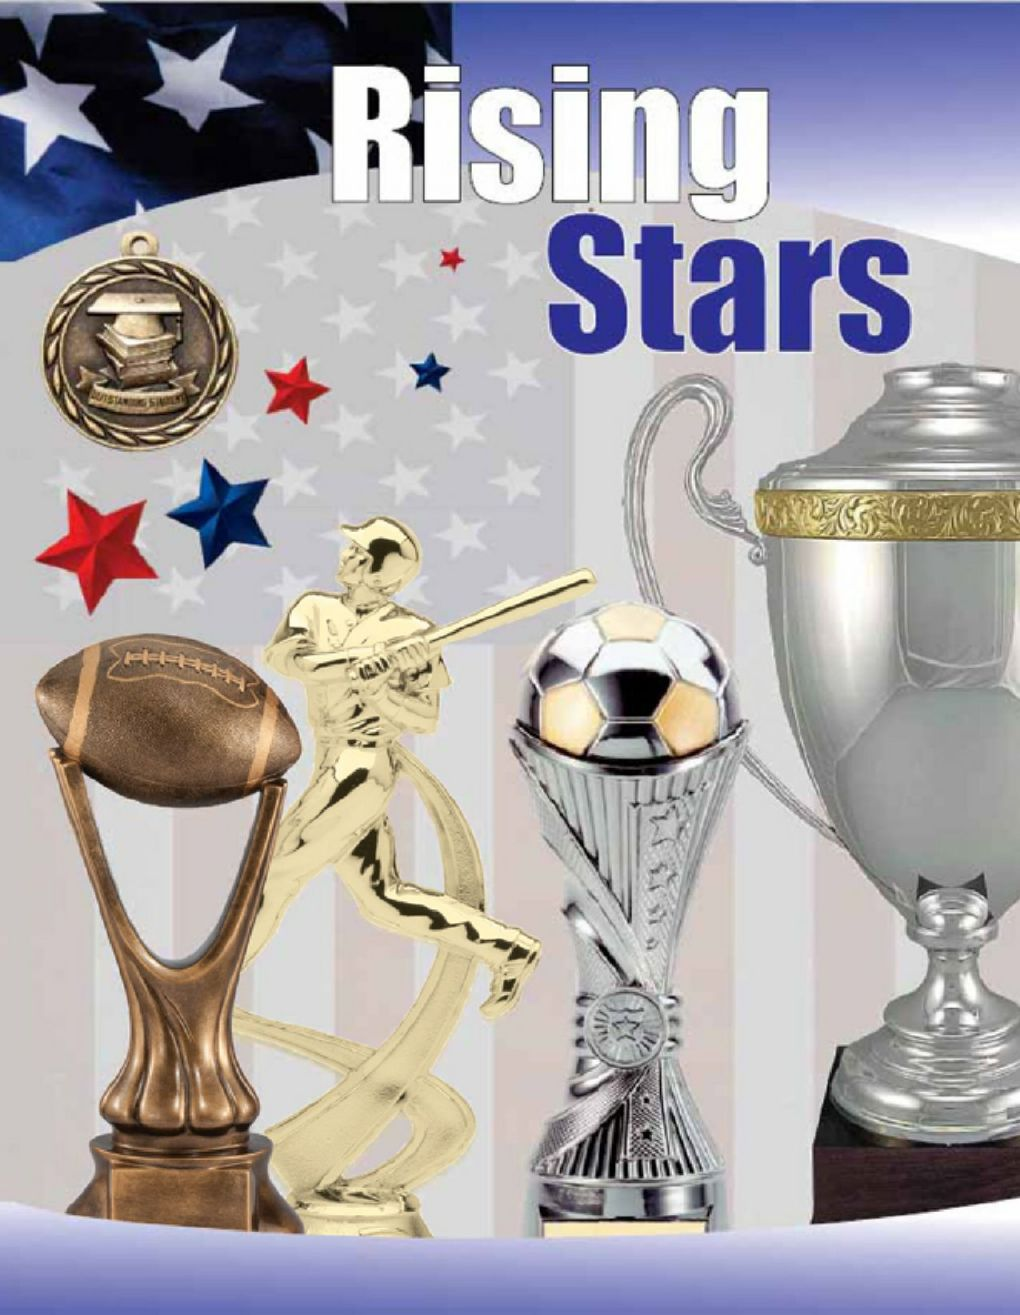 Rising Star Awards Sports Trophies & Medals Click for catalog